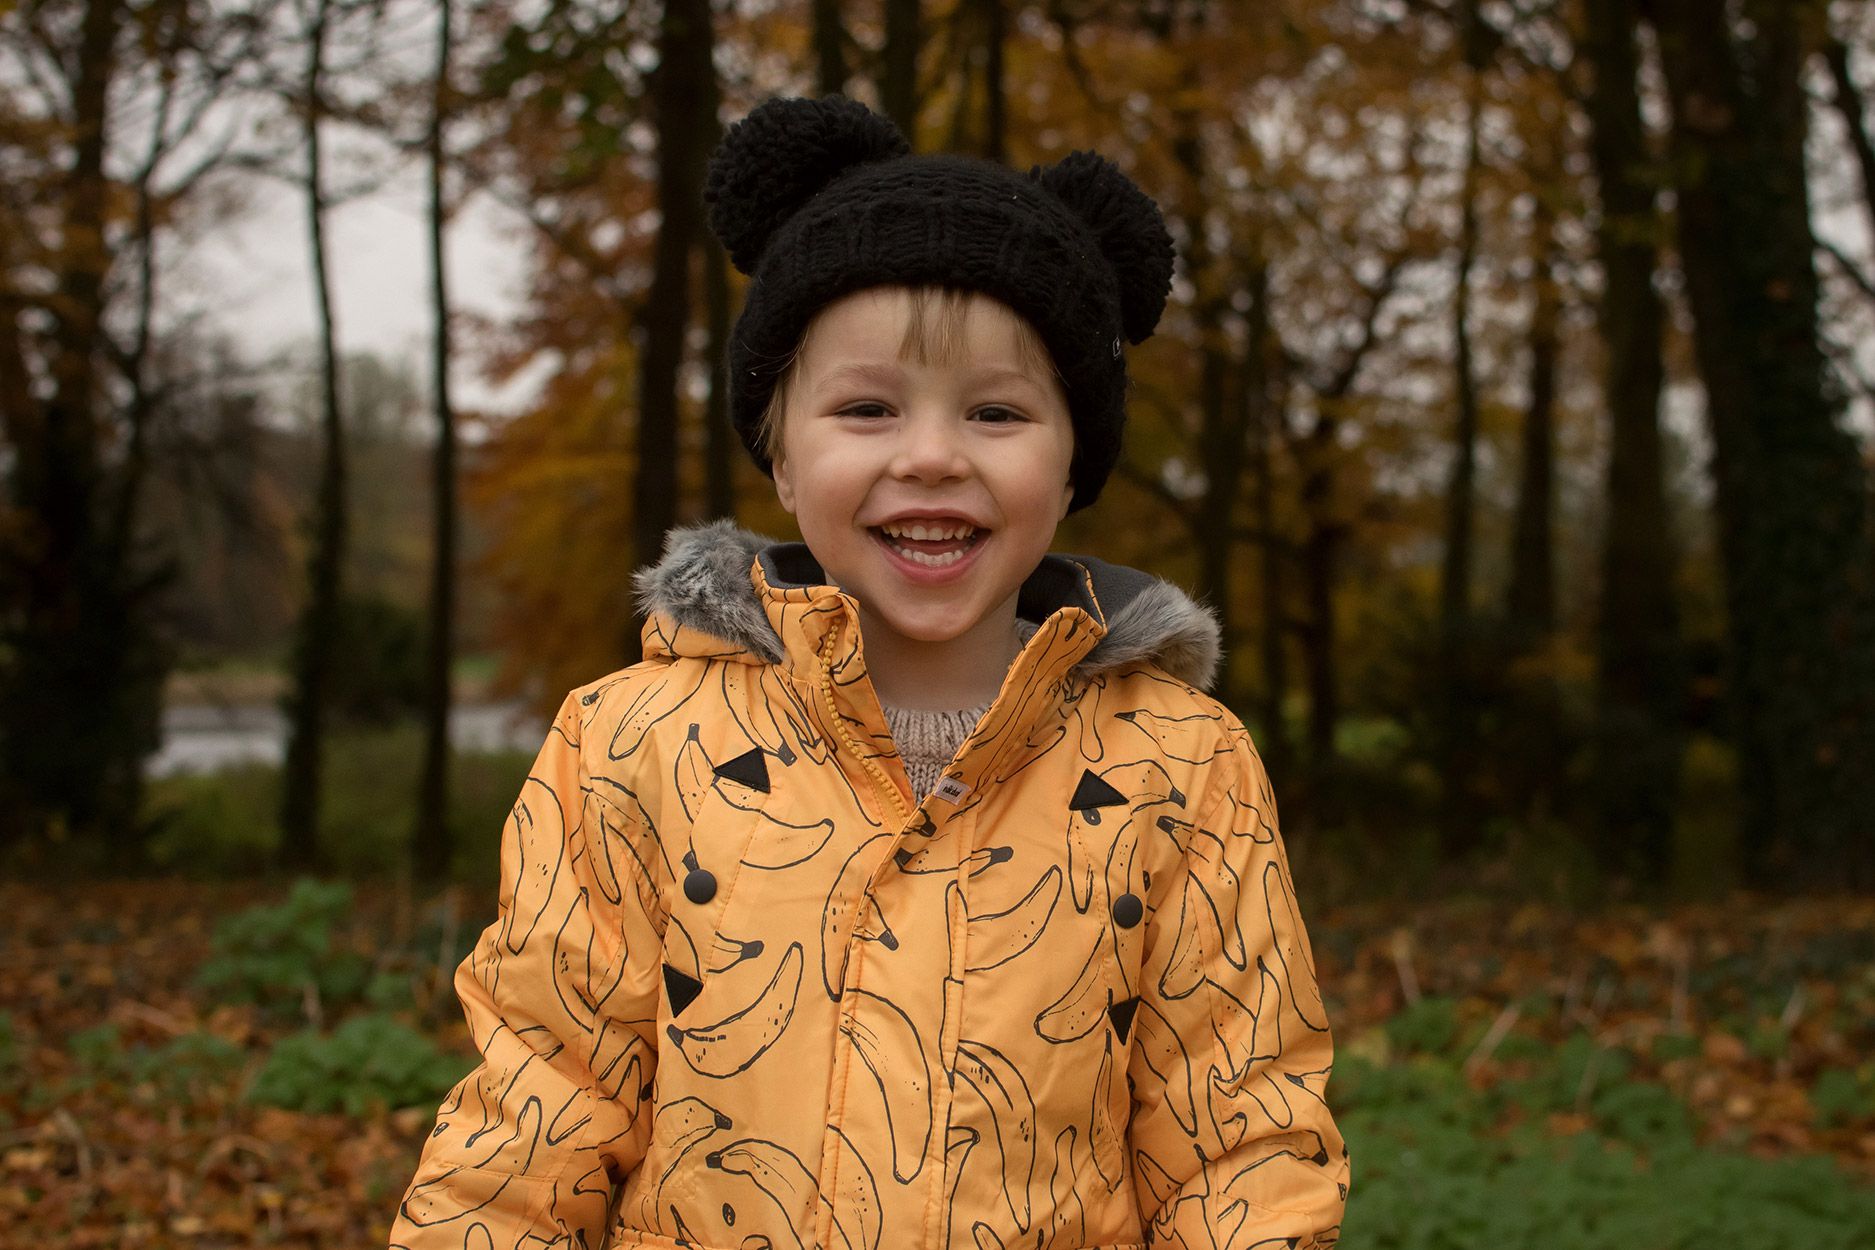 Pre-schooler wearing a banana Individual coat and MyK by Myleene Klass black bobble hat smiling at the park - taken on a Nikon D3300 with 35mm lens